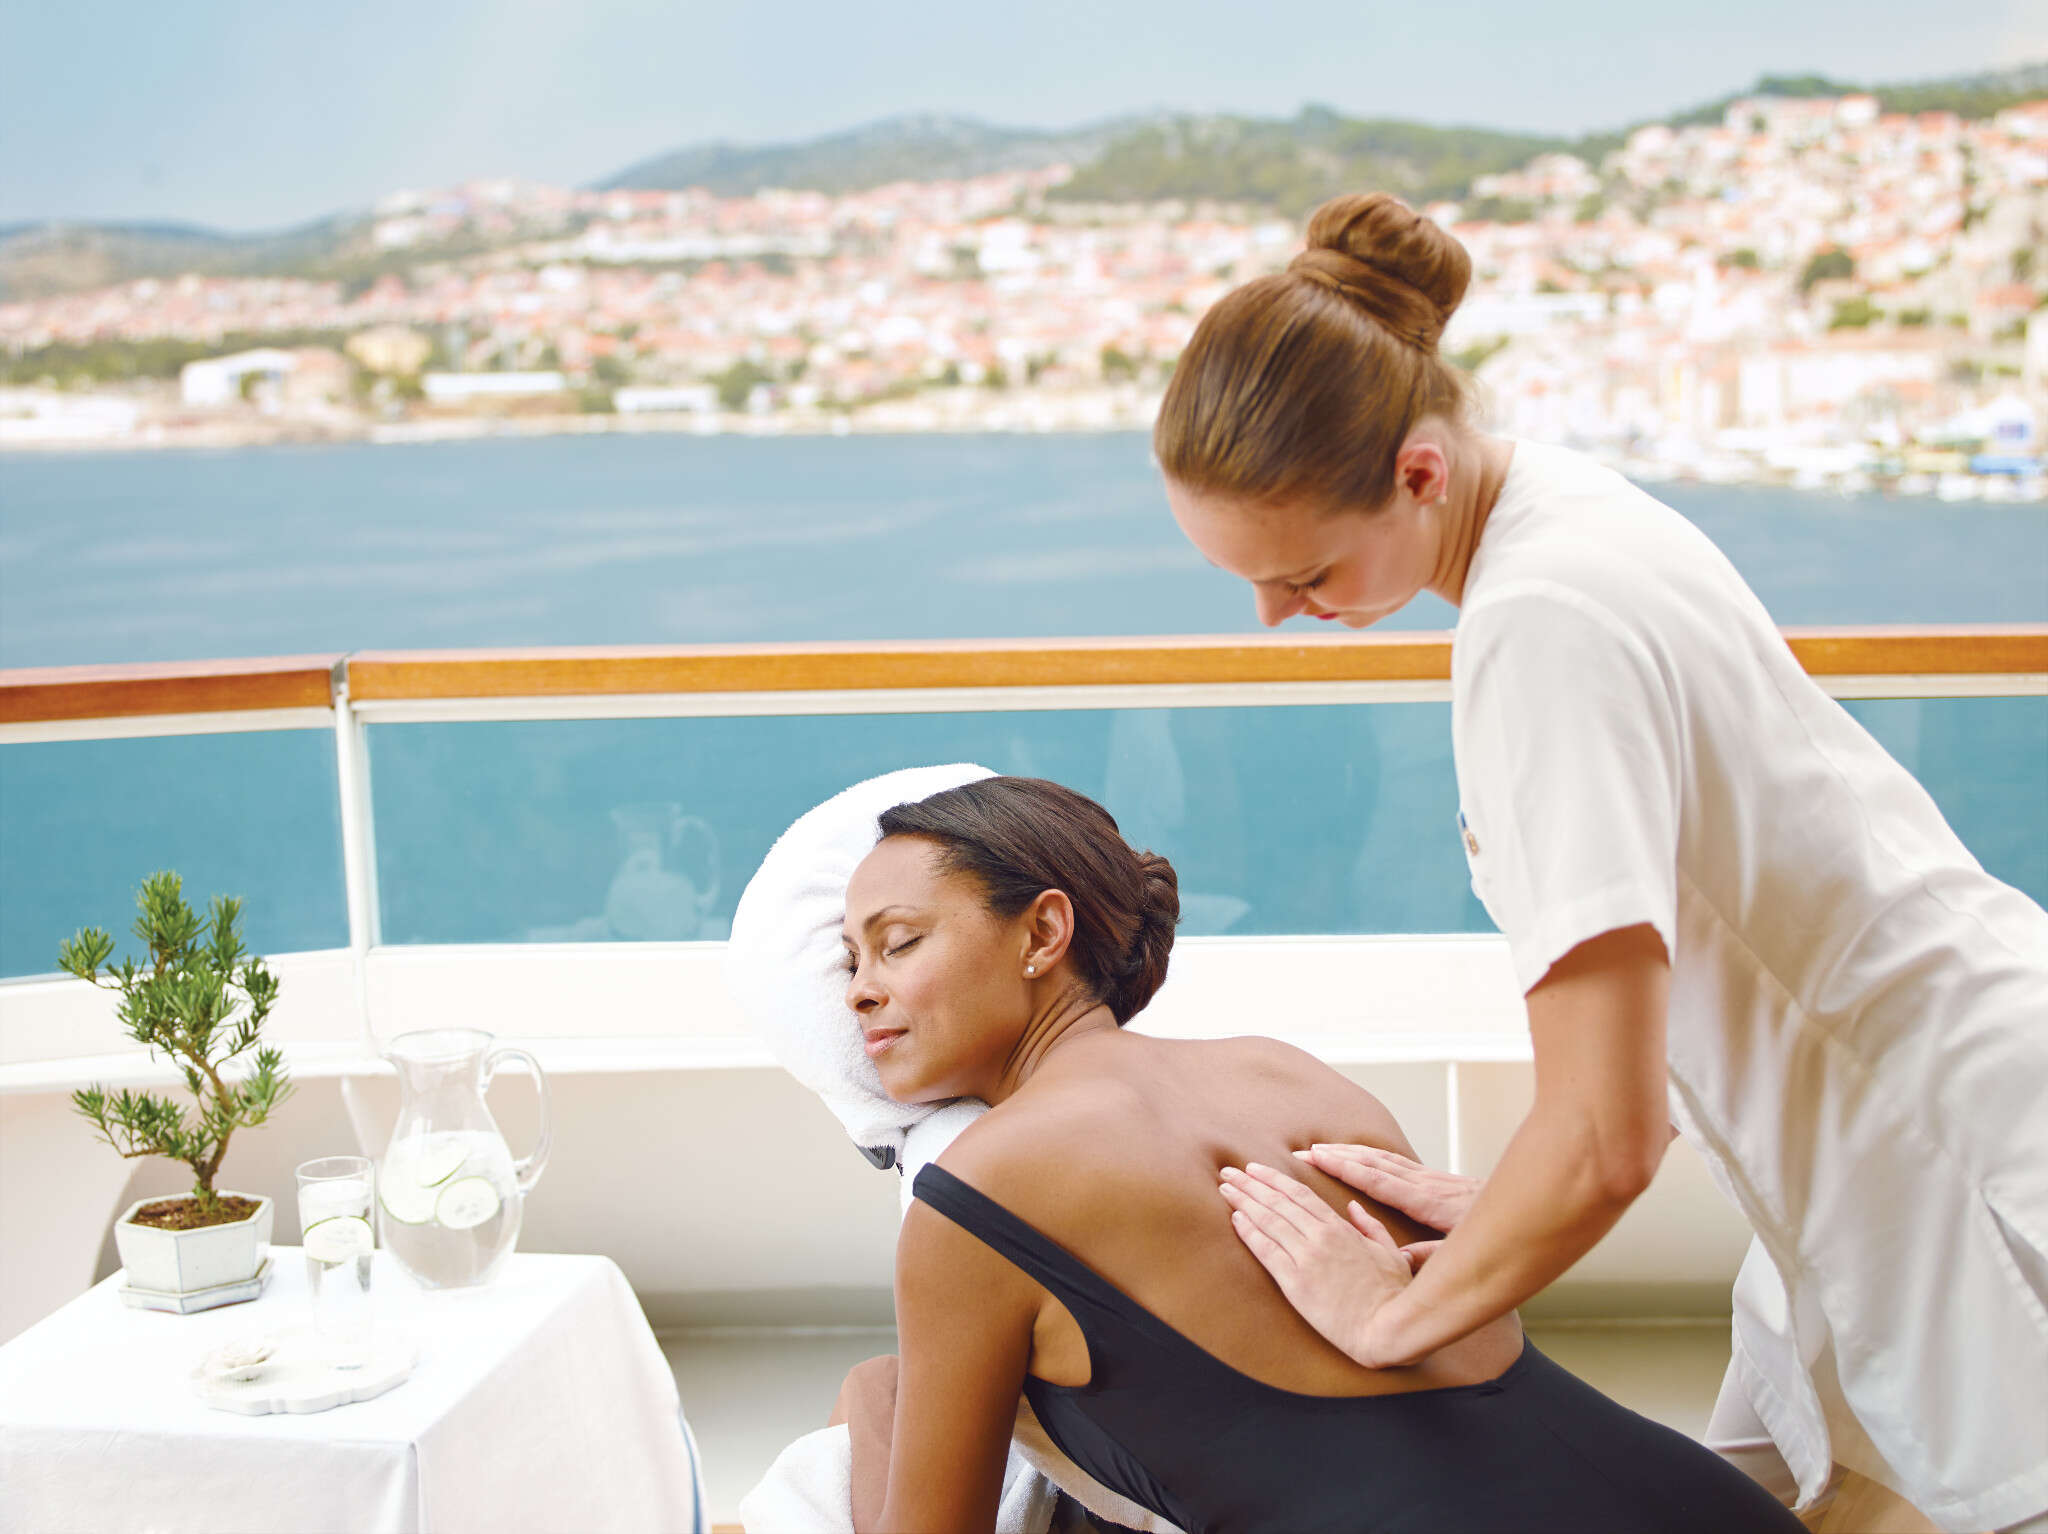 Seabourn Launches Holistic Wellness Program with Celebrity Author Dr. Andrew Weil